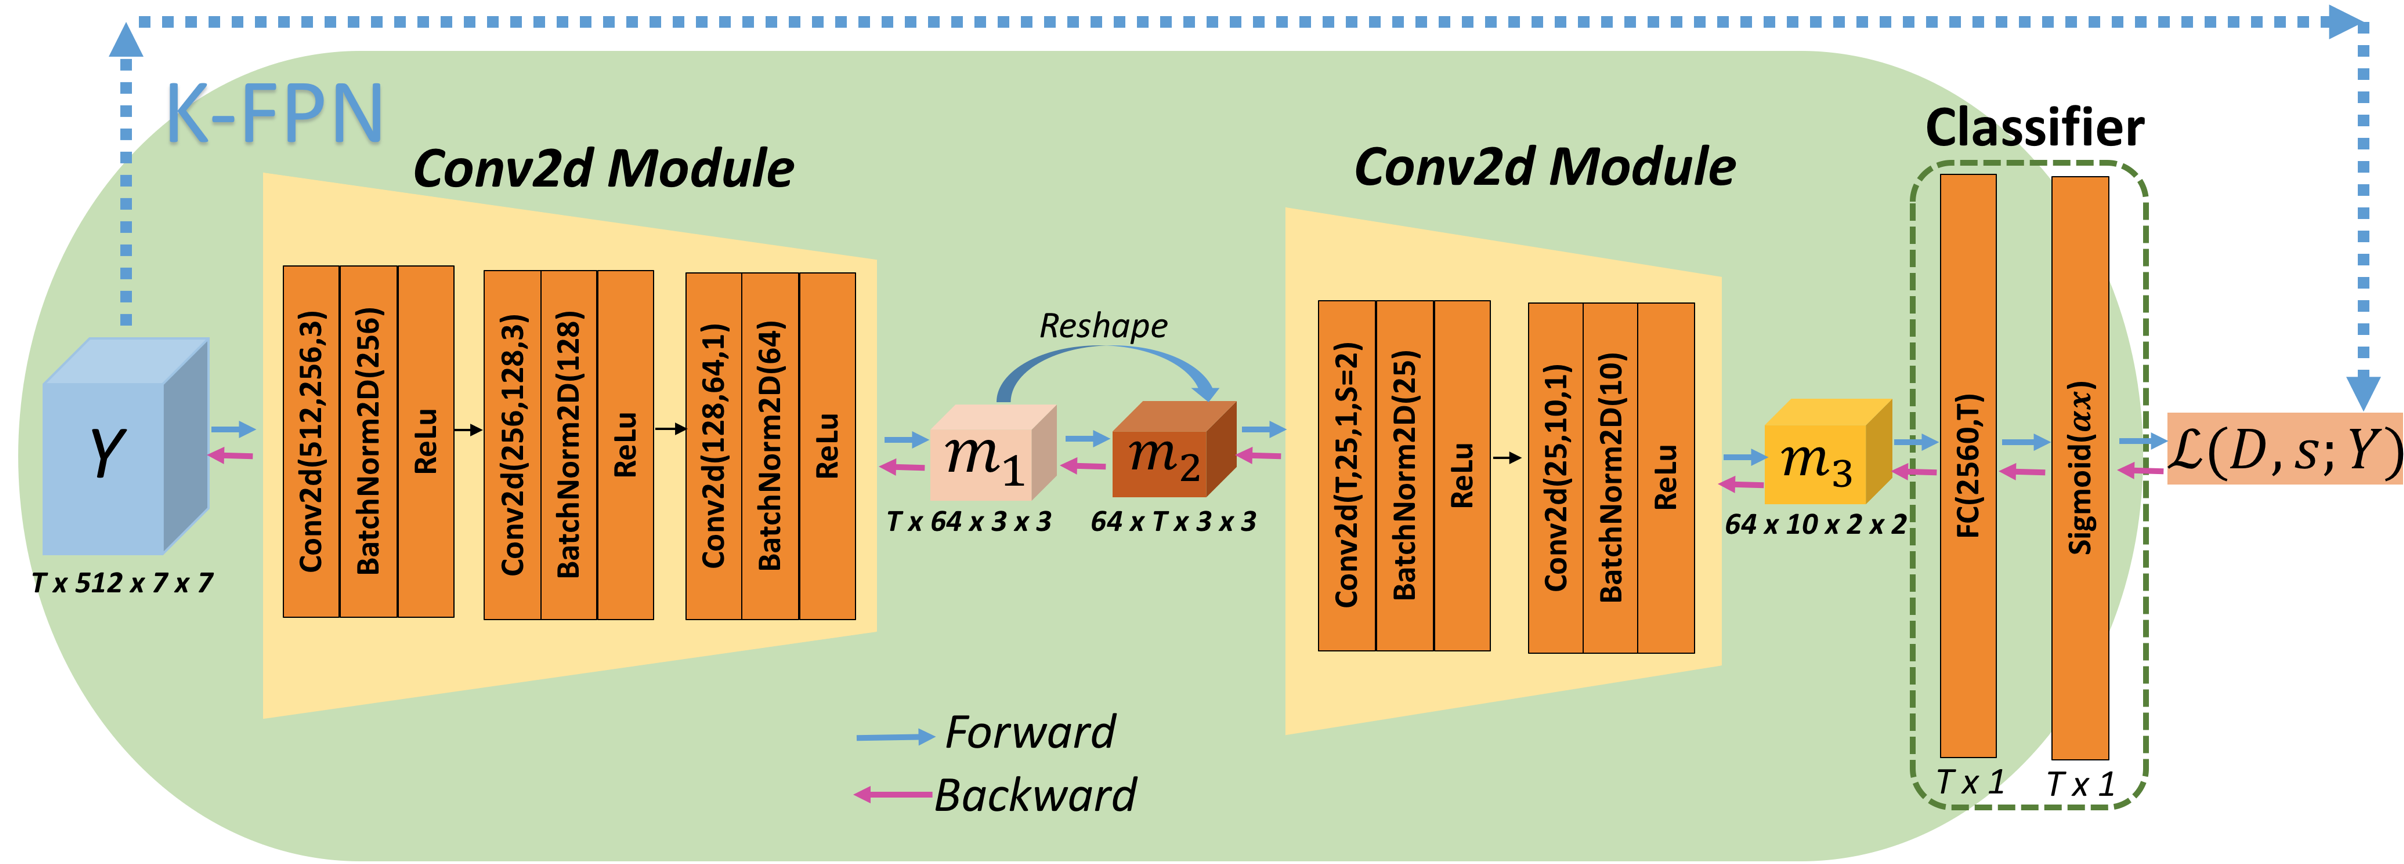 K-FPN Architecture and details of its modules.